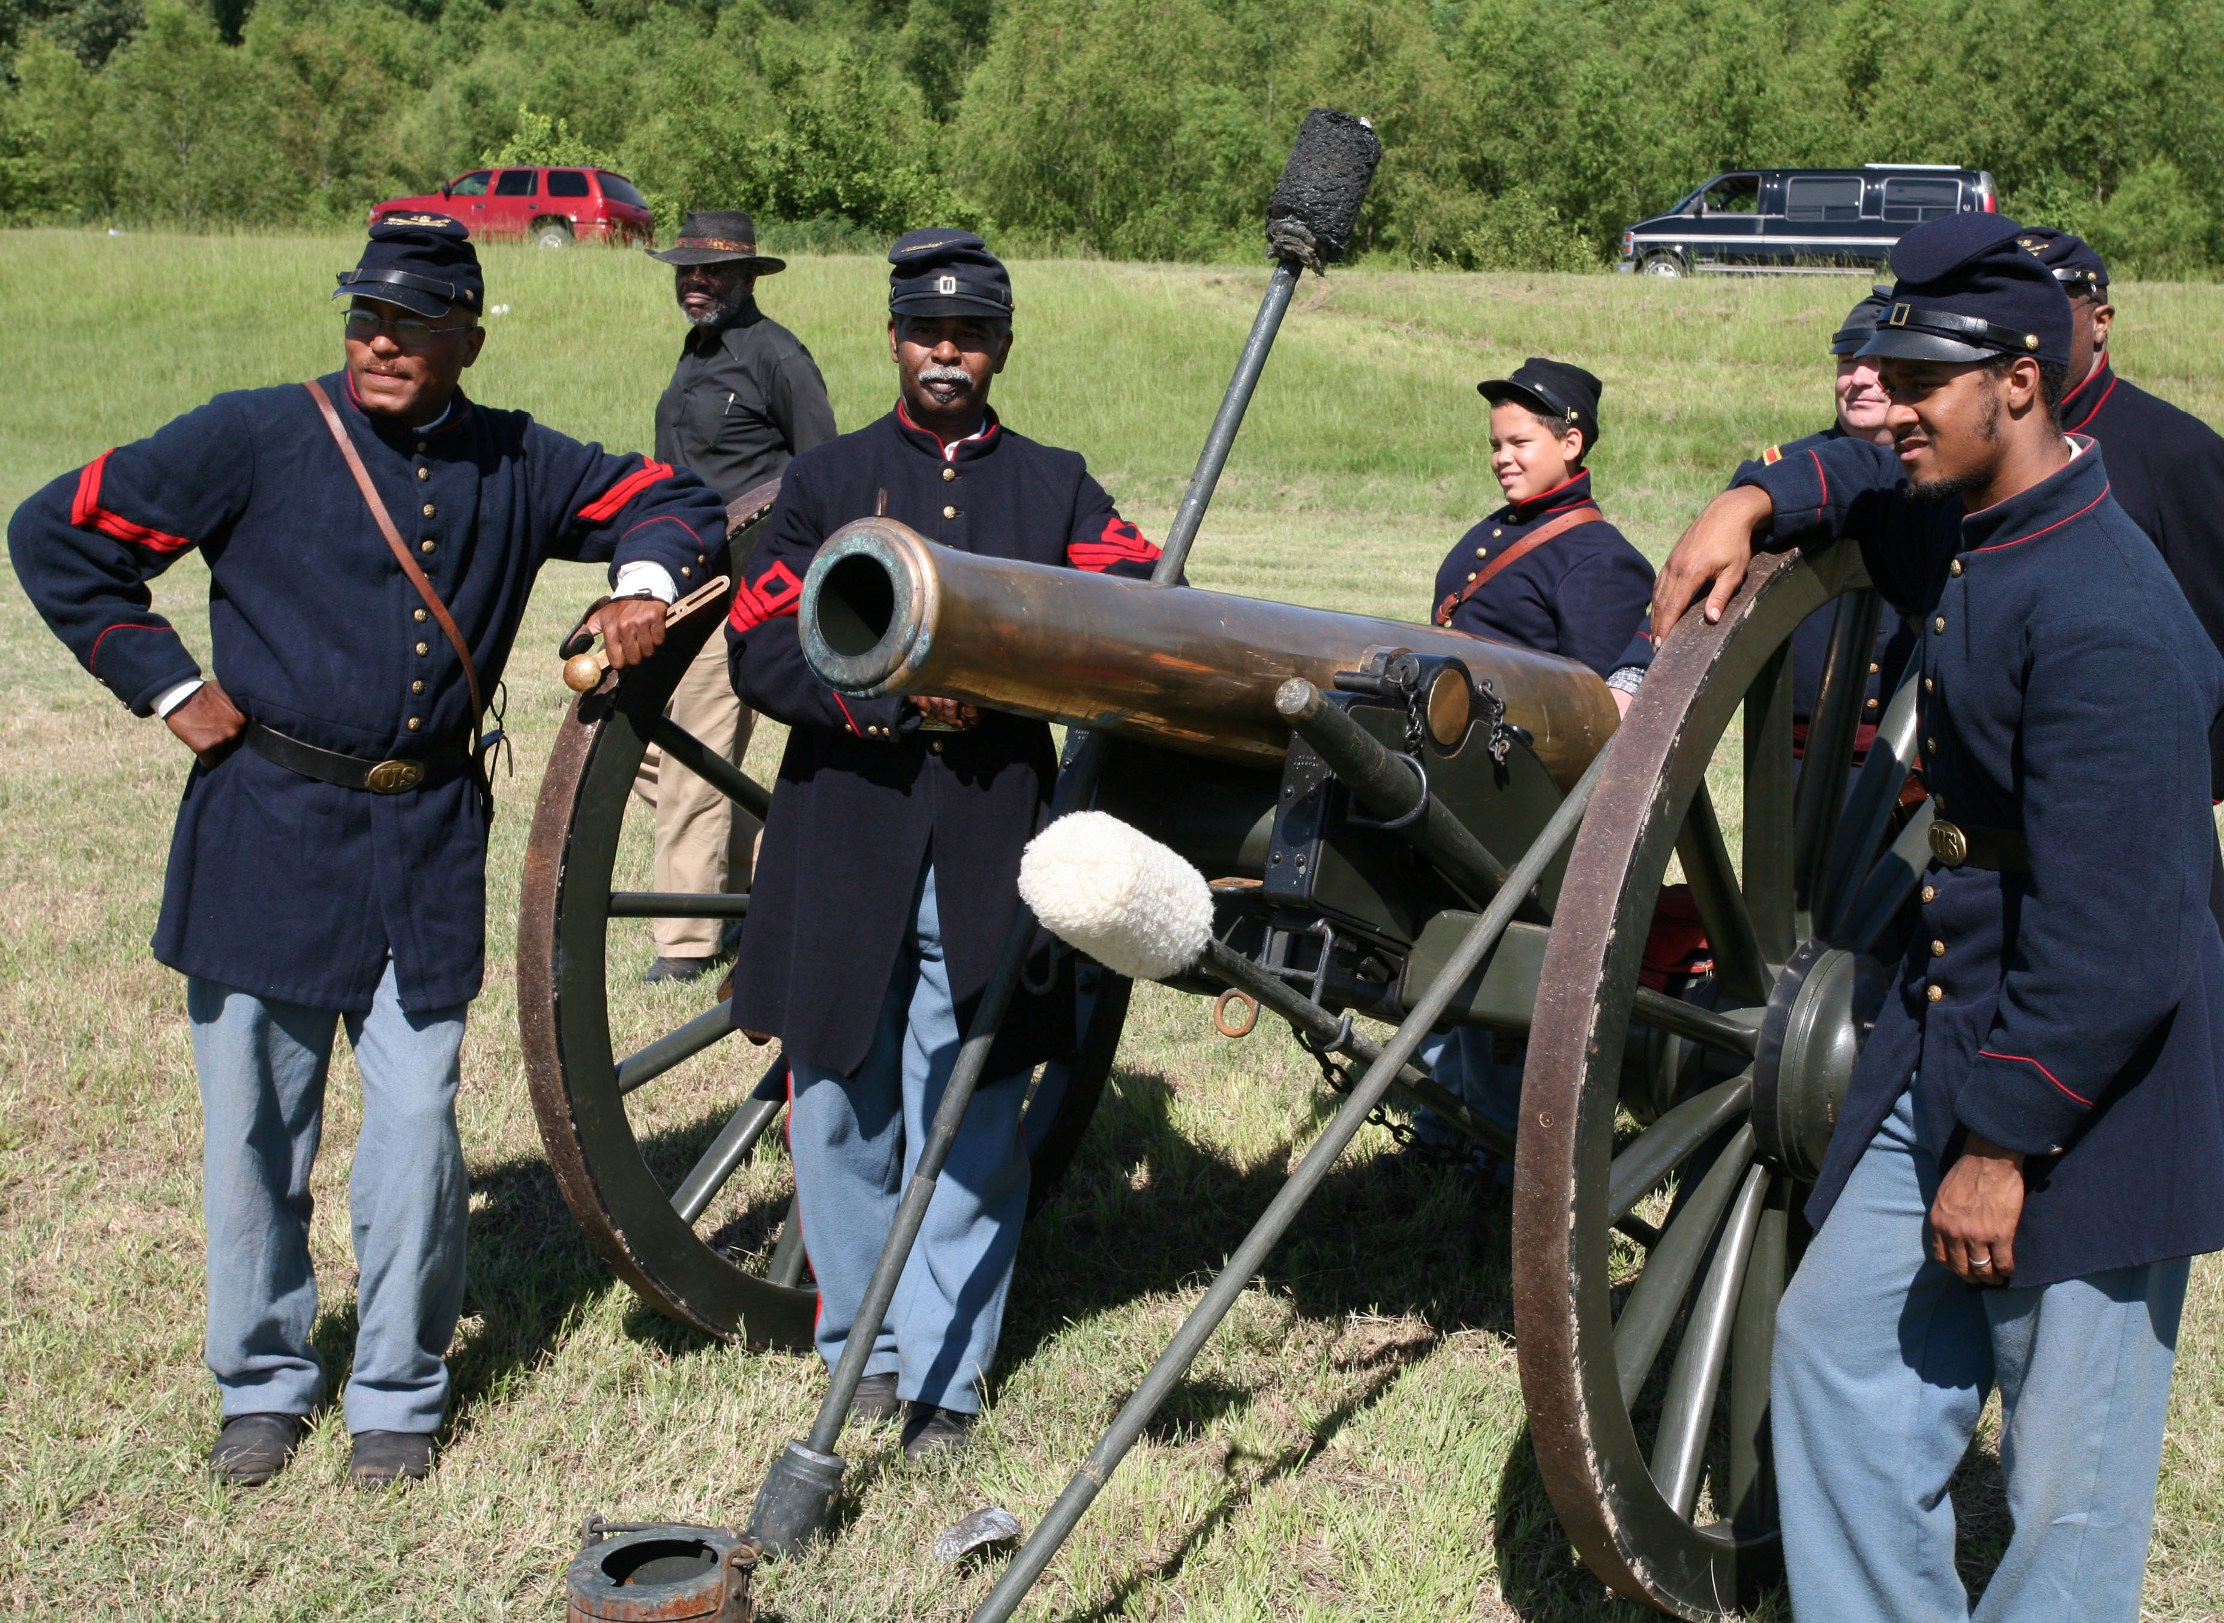 Civil War Enactors